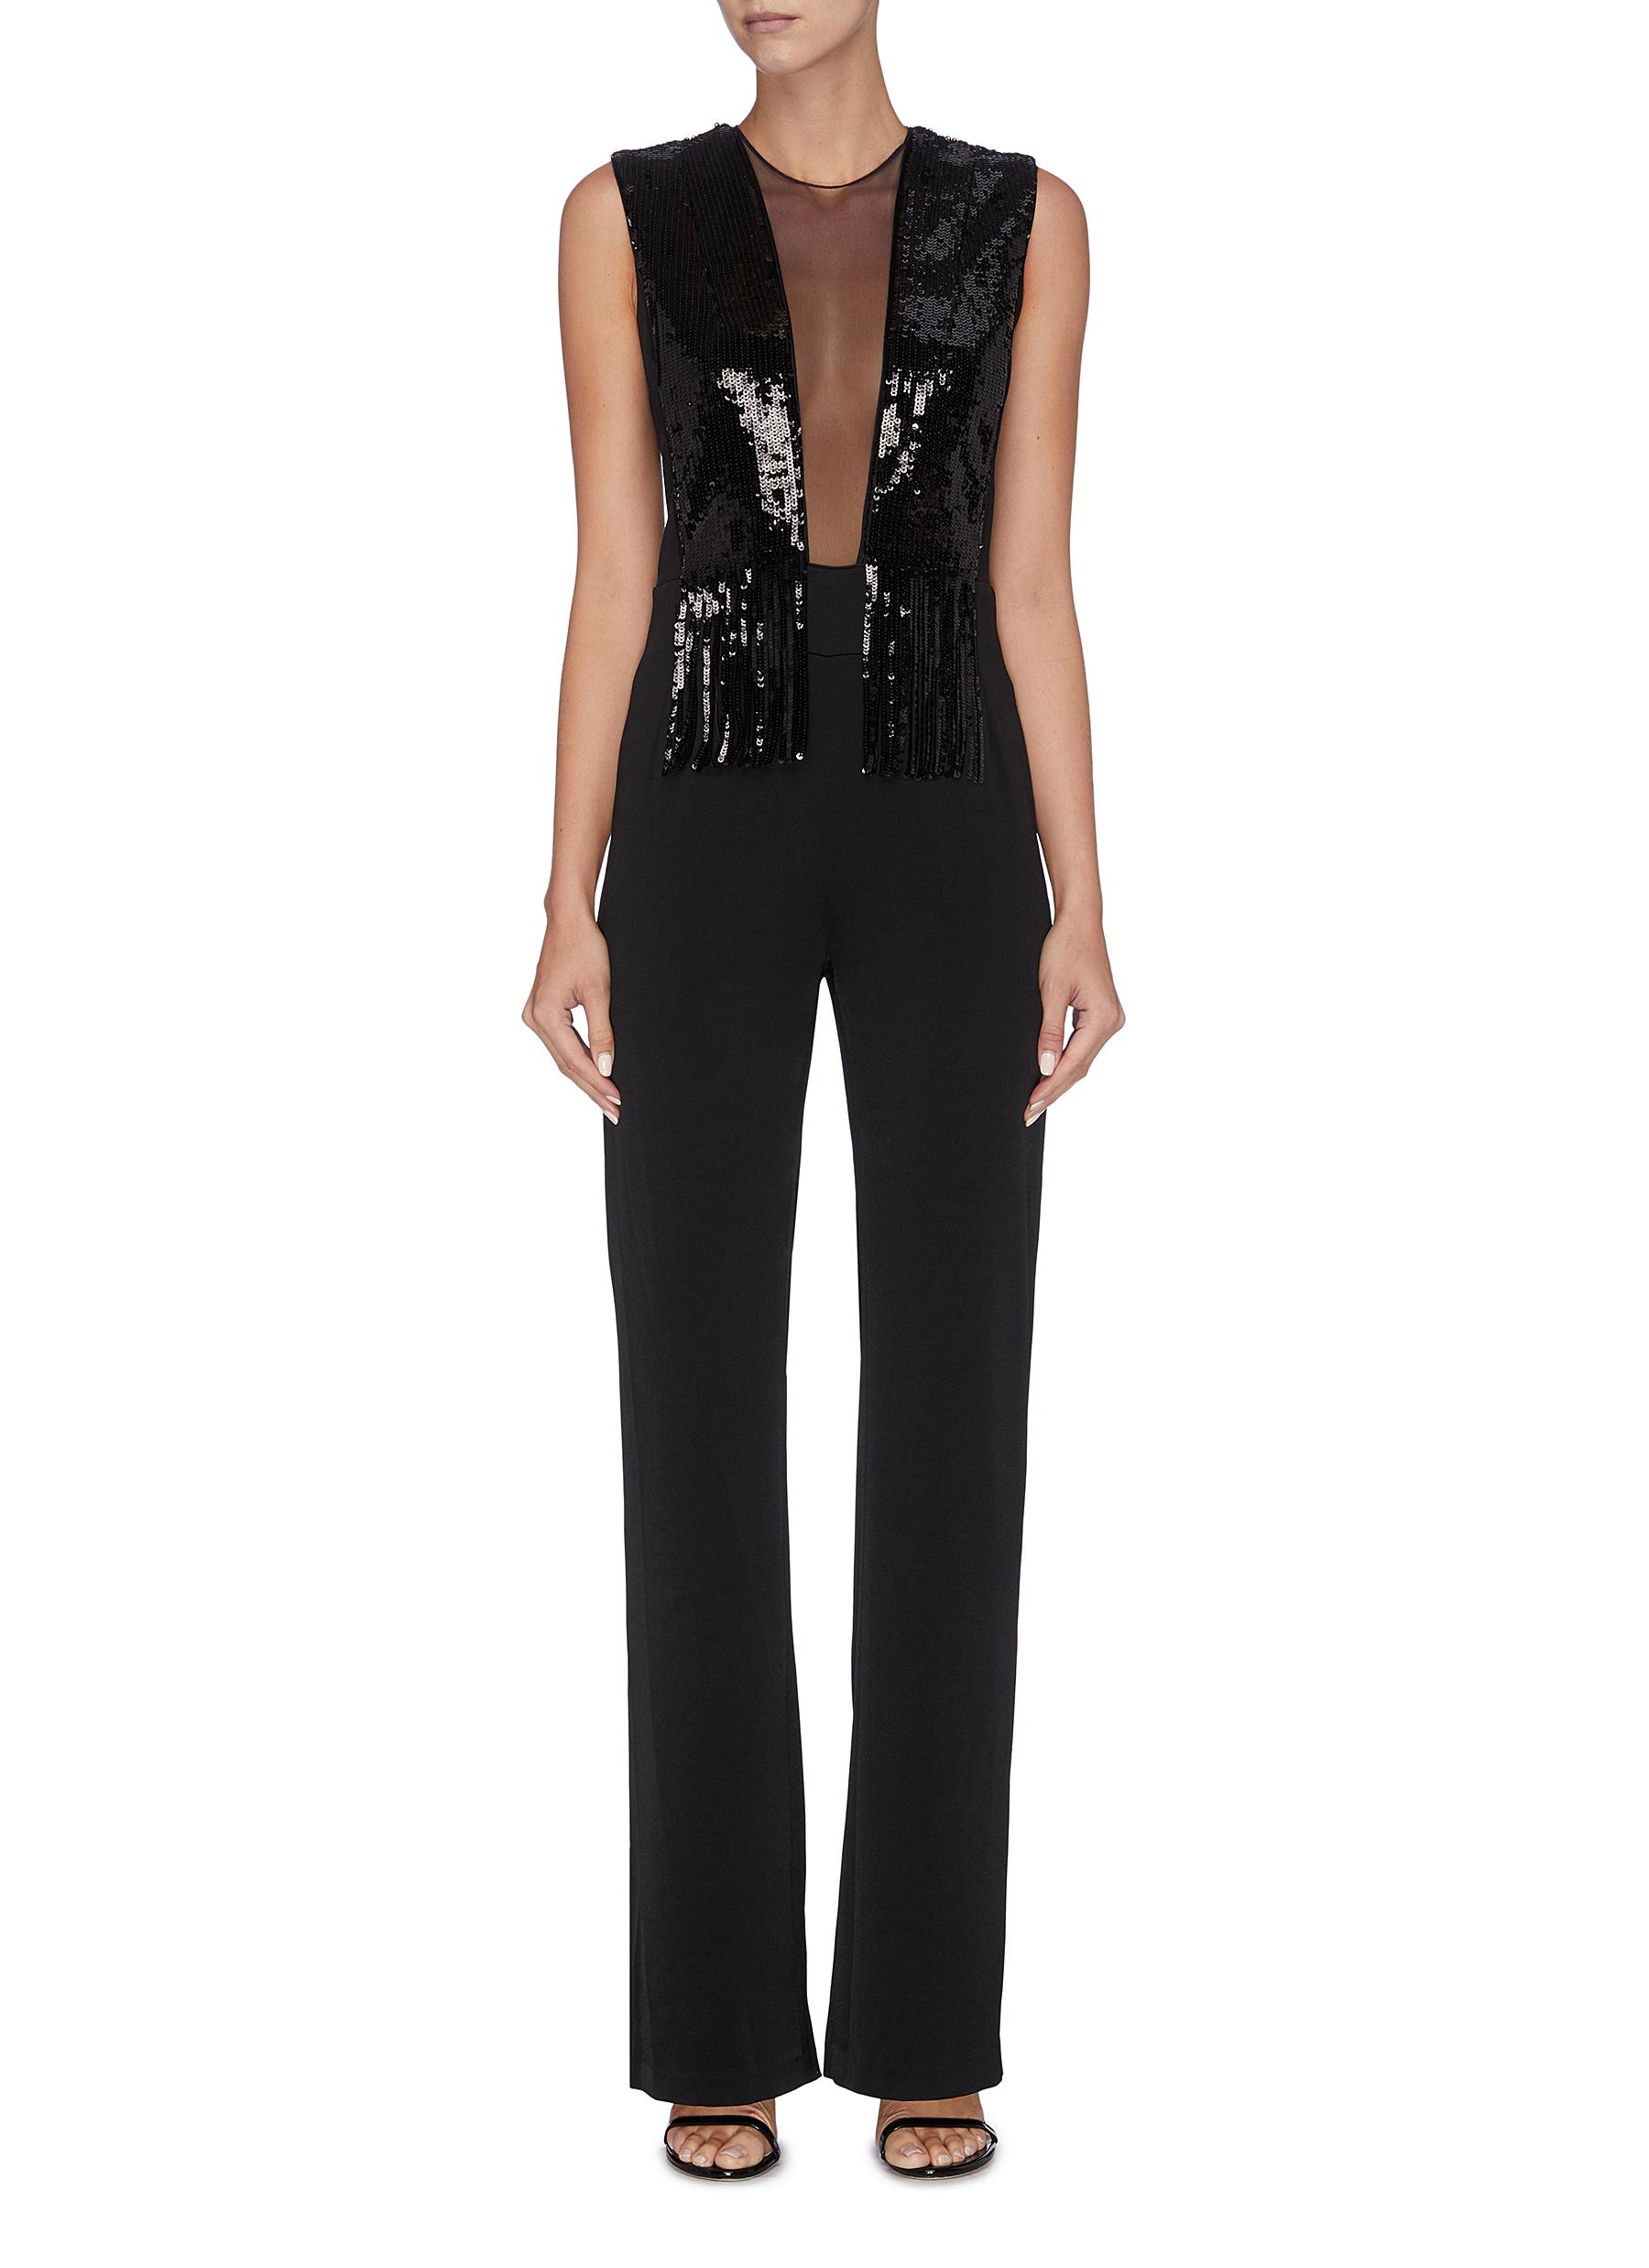 Lena fringe sequin tulle panel sleeveless jumpsuit by Galvan London